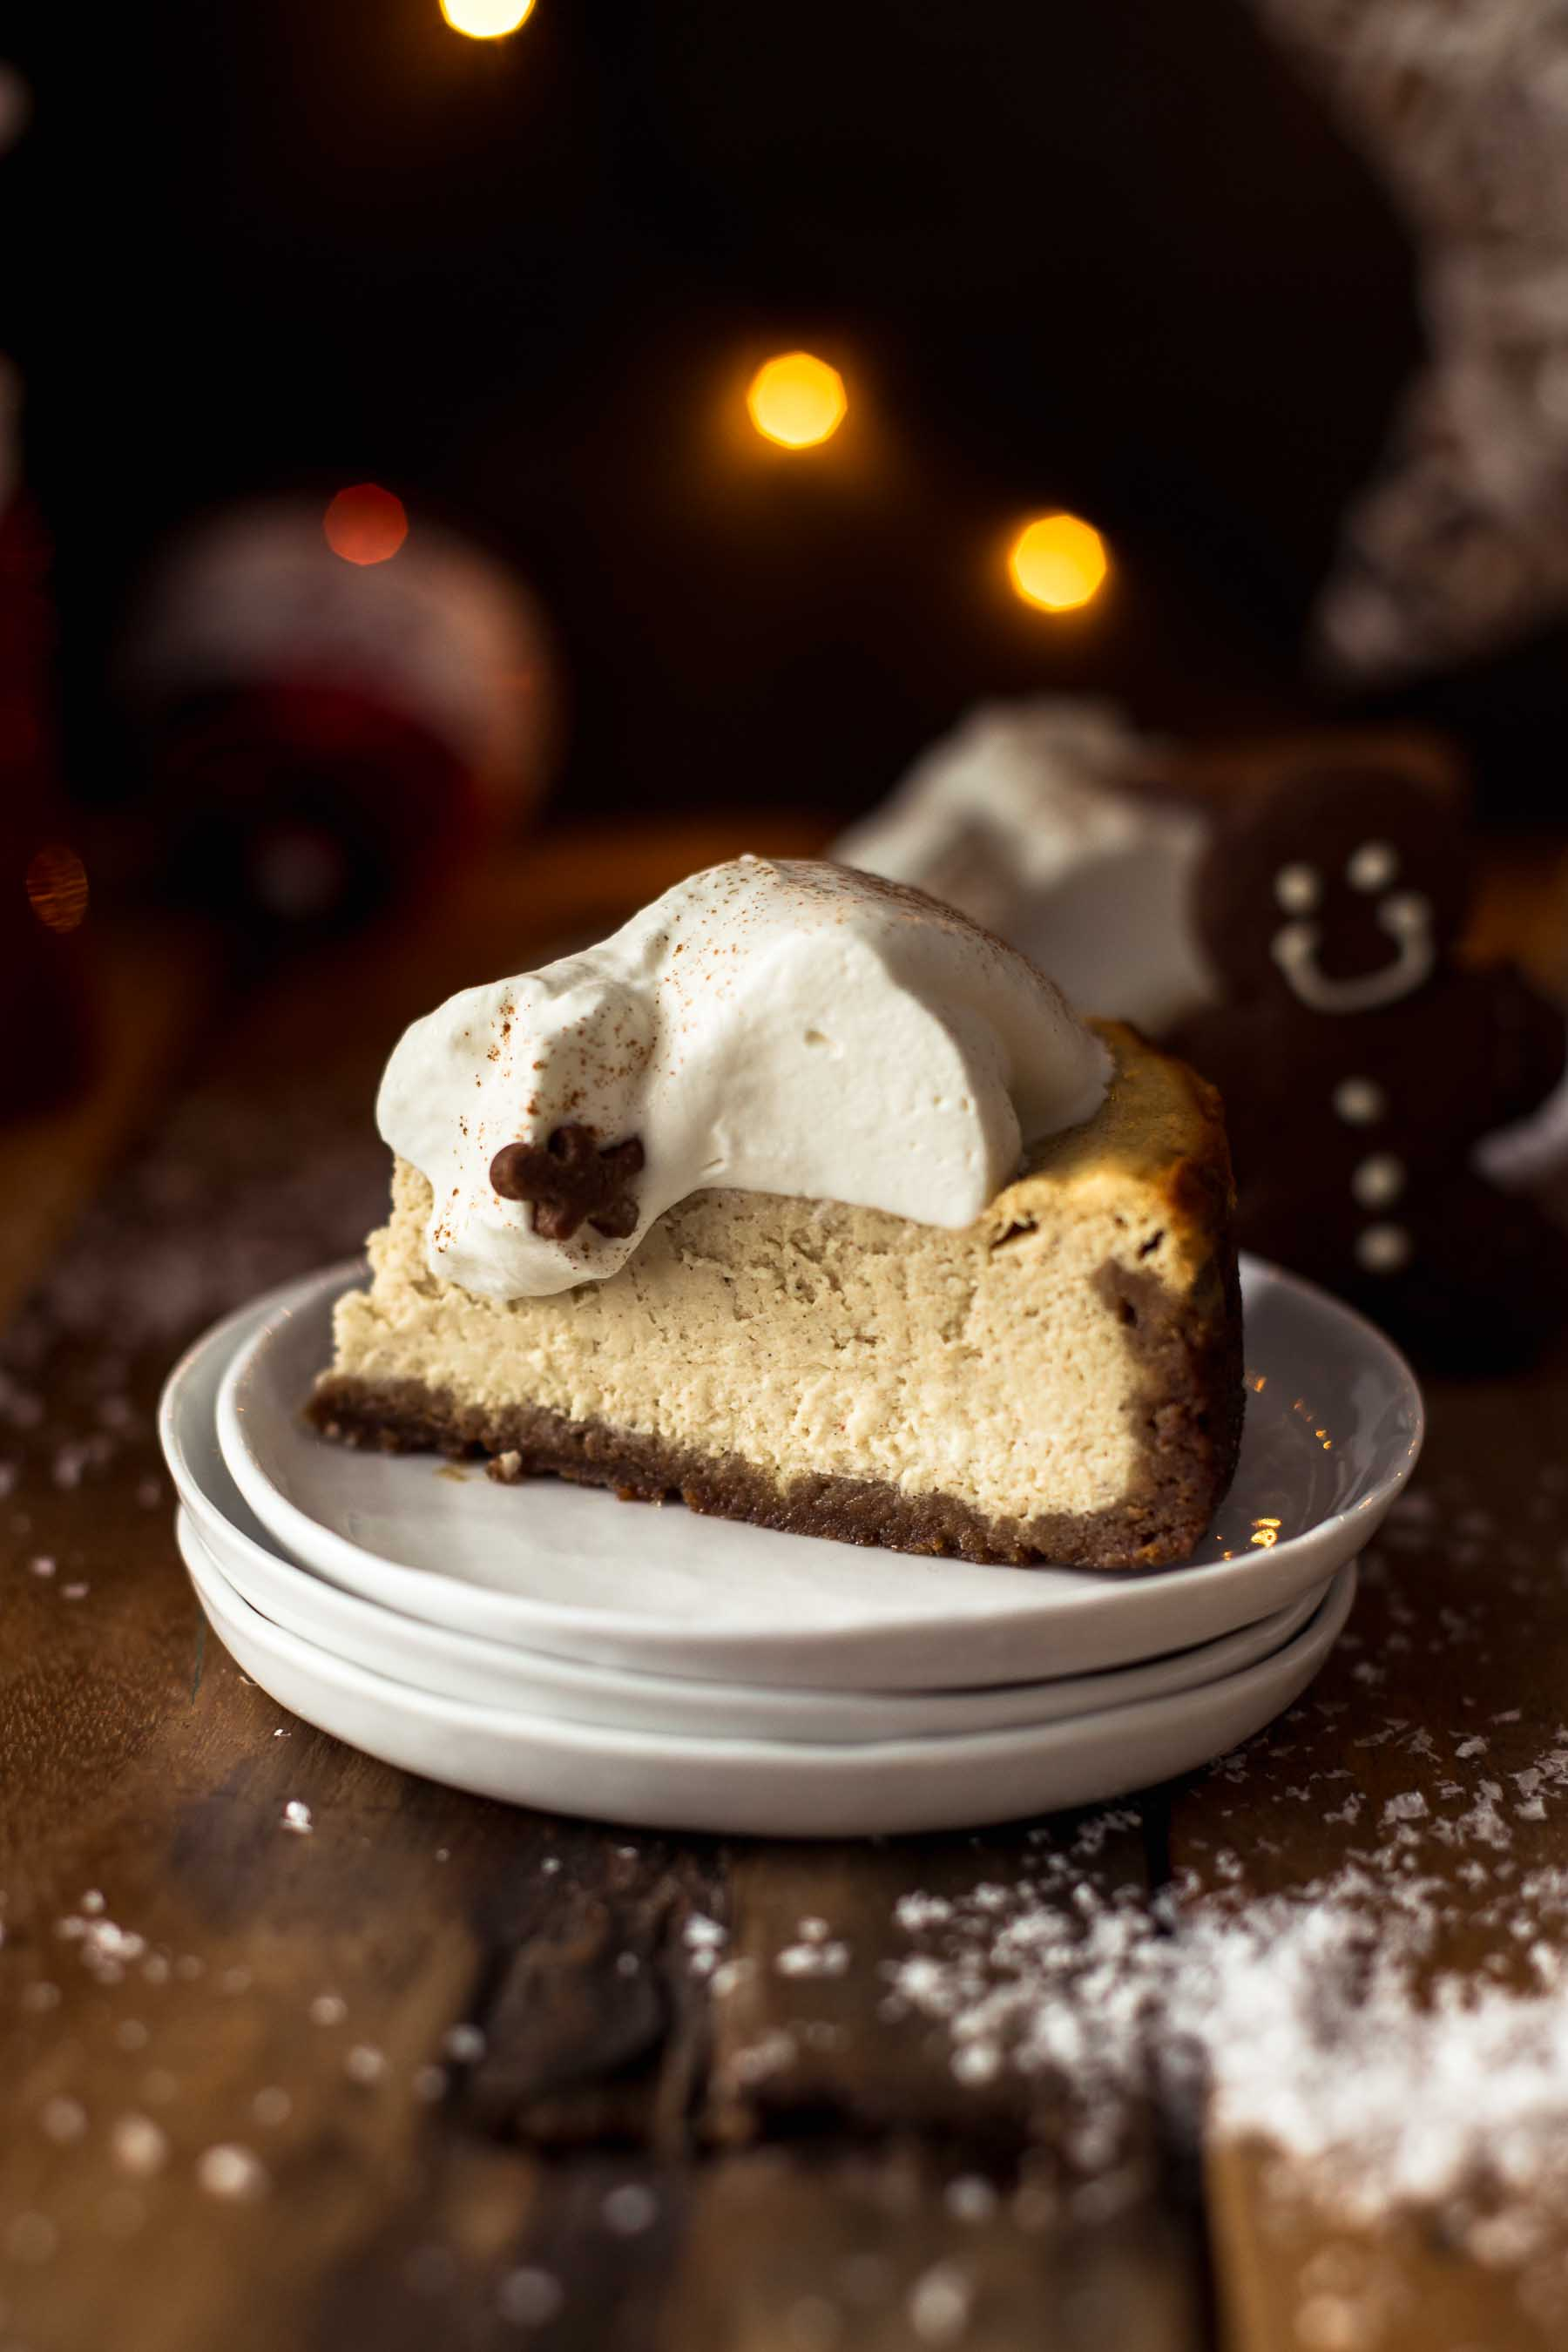 A slice of Baked Eggnog Cheesecake with Gingerbread Crust on plates